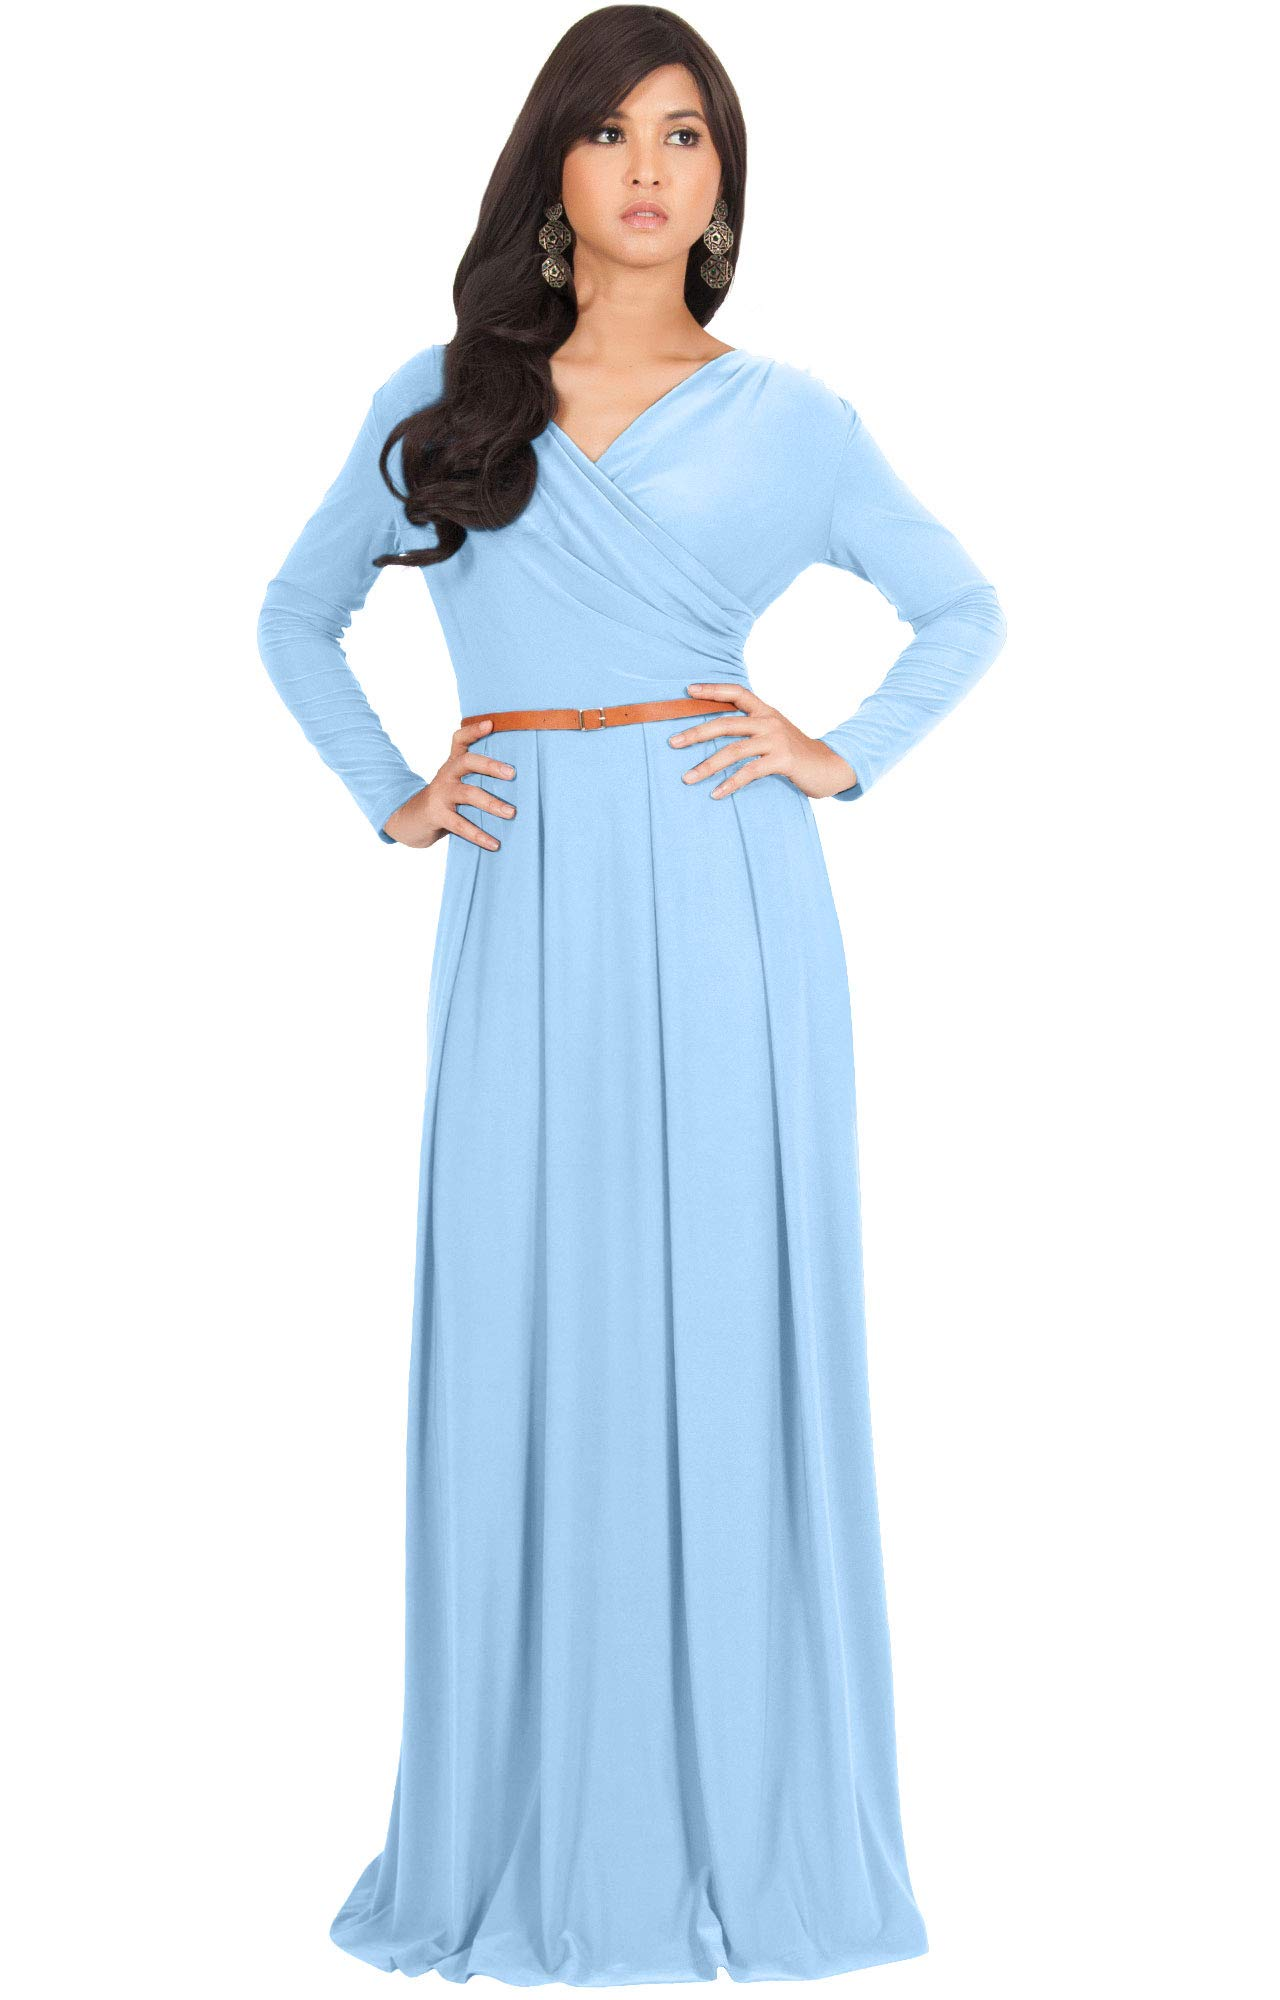 6972a4682bd016 KOH KOH Womens Long V-Neck Sleeve Sleeves Fall Formal Flowy Floor Length  Evening Casual Day Modest Abaya Muslim Gown Gowns Maxi Dress Dresses,  Powder Light ...